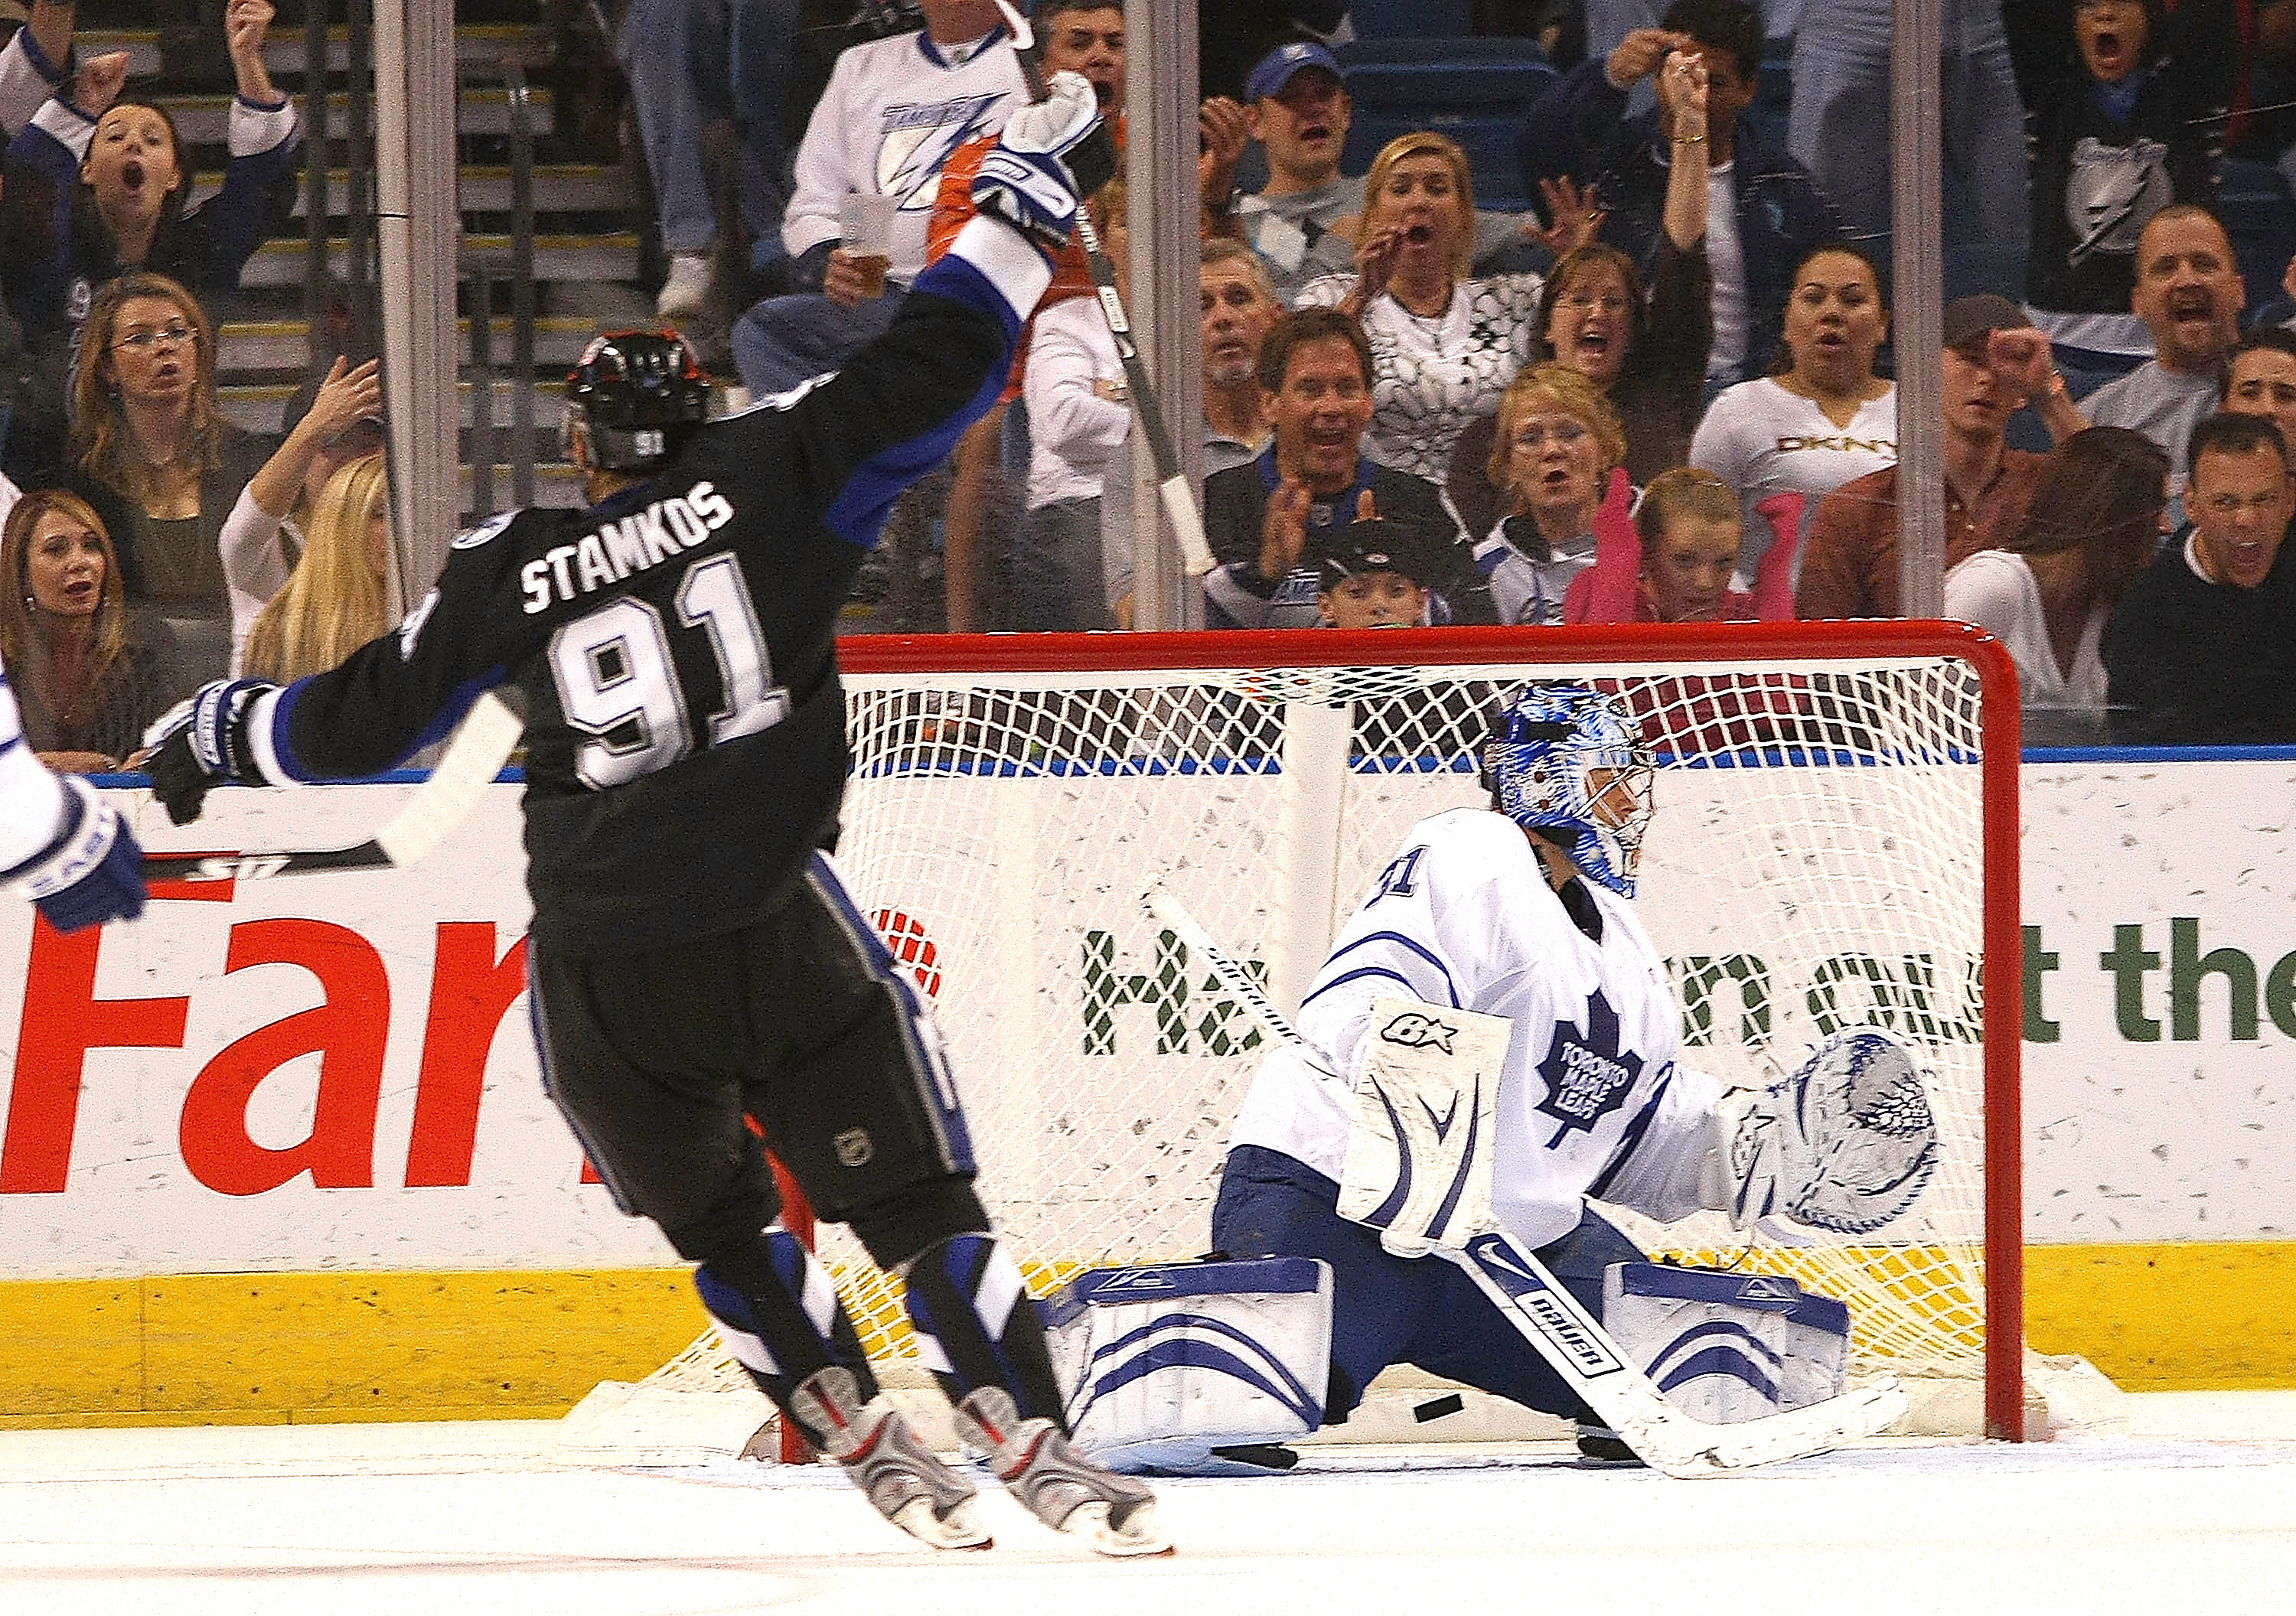 TAMPA, FL - FEBRUARY 12: Curtis Joseph #31 of the Toronto Maple Leafs gives up a third period goal to Steven Stamkos #91 of the Tampa Bay Lightning on February 12, 2009 at the St. Pete Times Forum in Tampa, Florida. The Lightning defeated the Maple Leafs